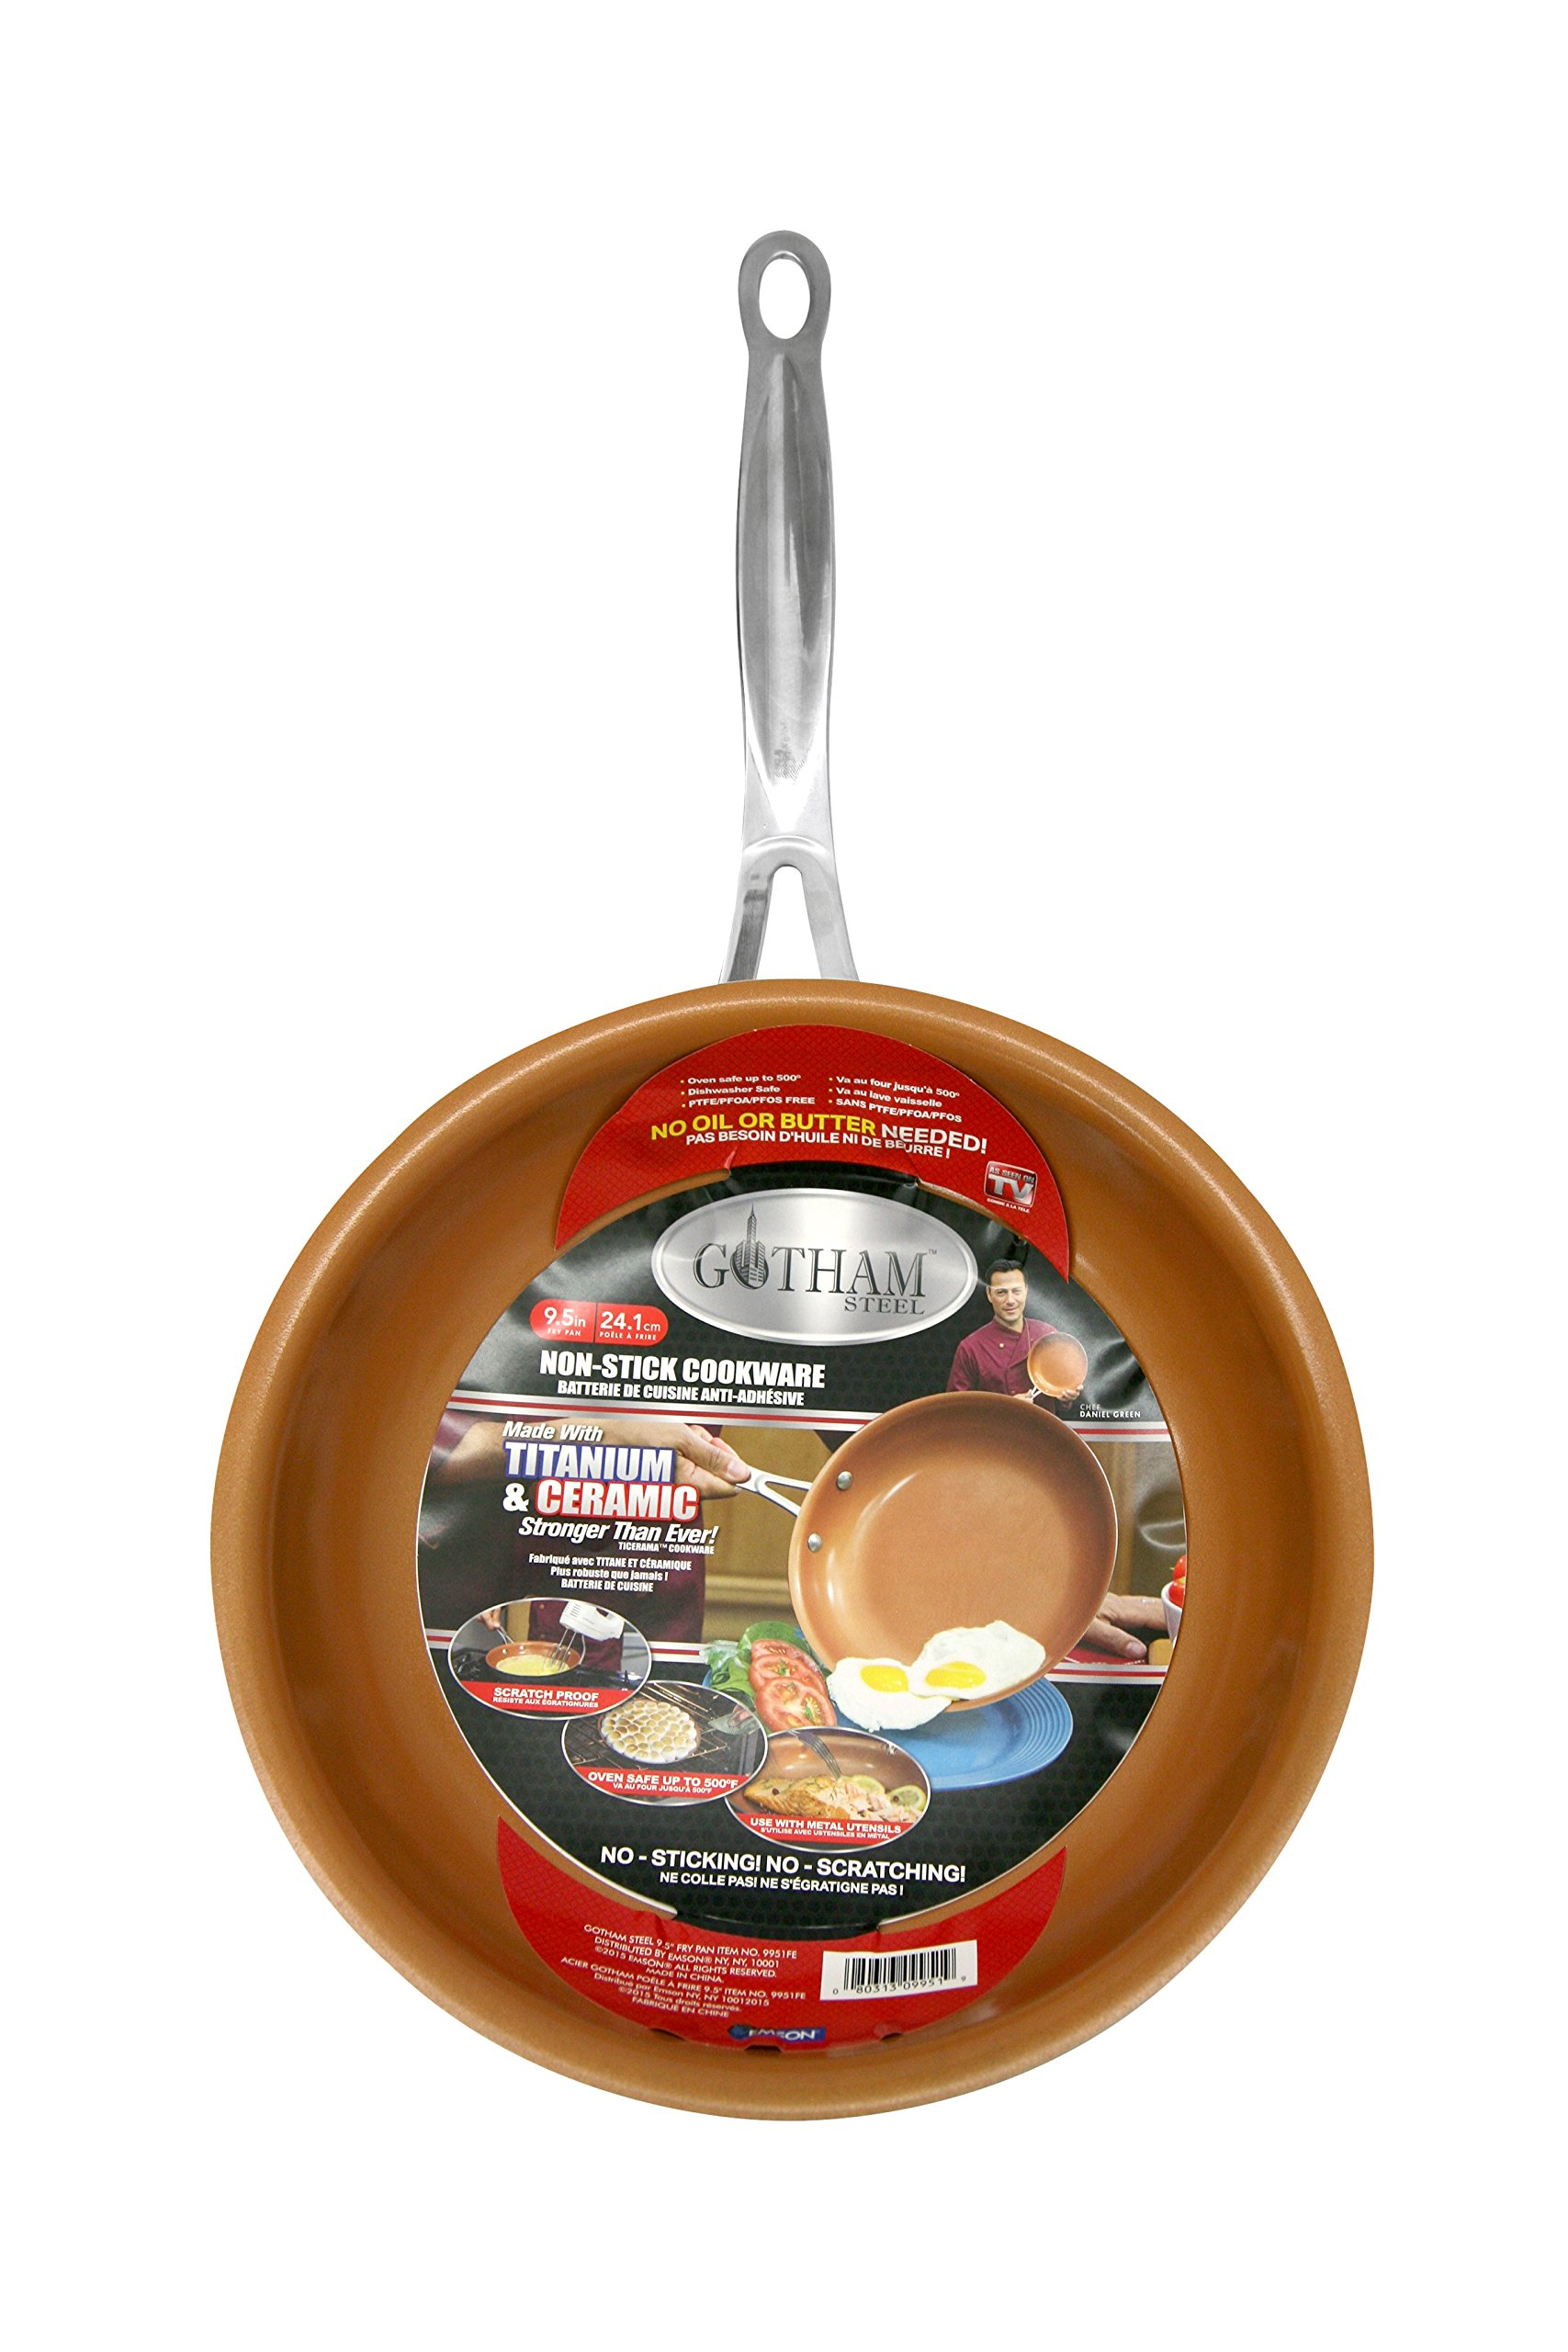 GOTHAM STEEL 9.5 inches Non-stick Titanium Frying Pan by Daniel Green by GOTHAM STEEL